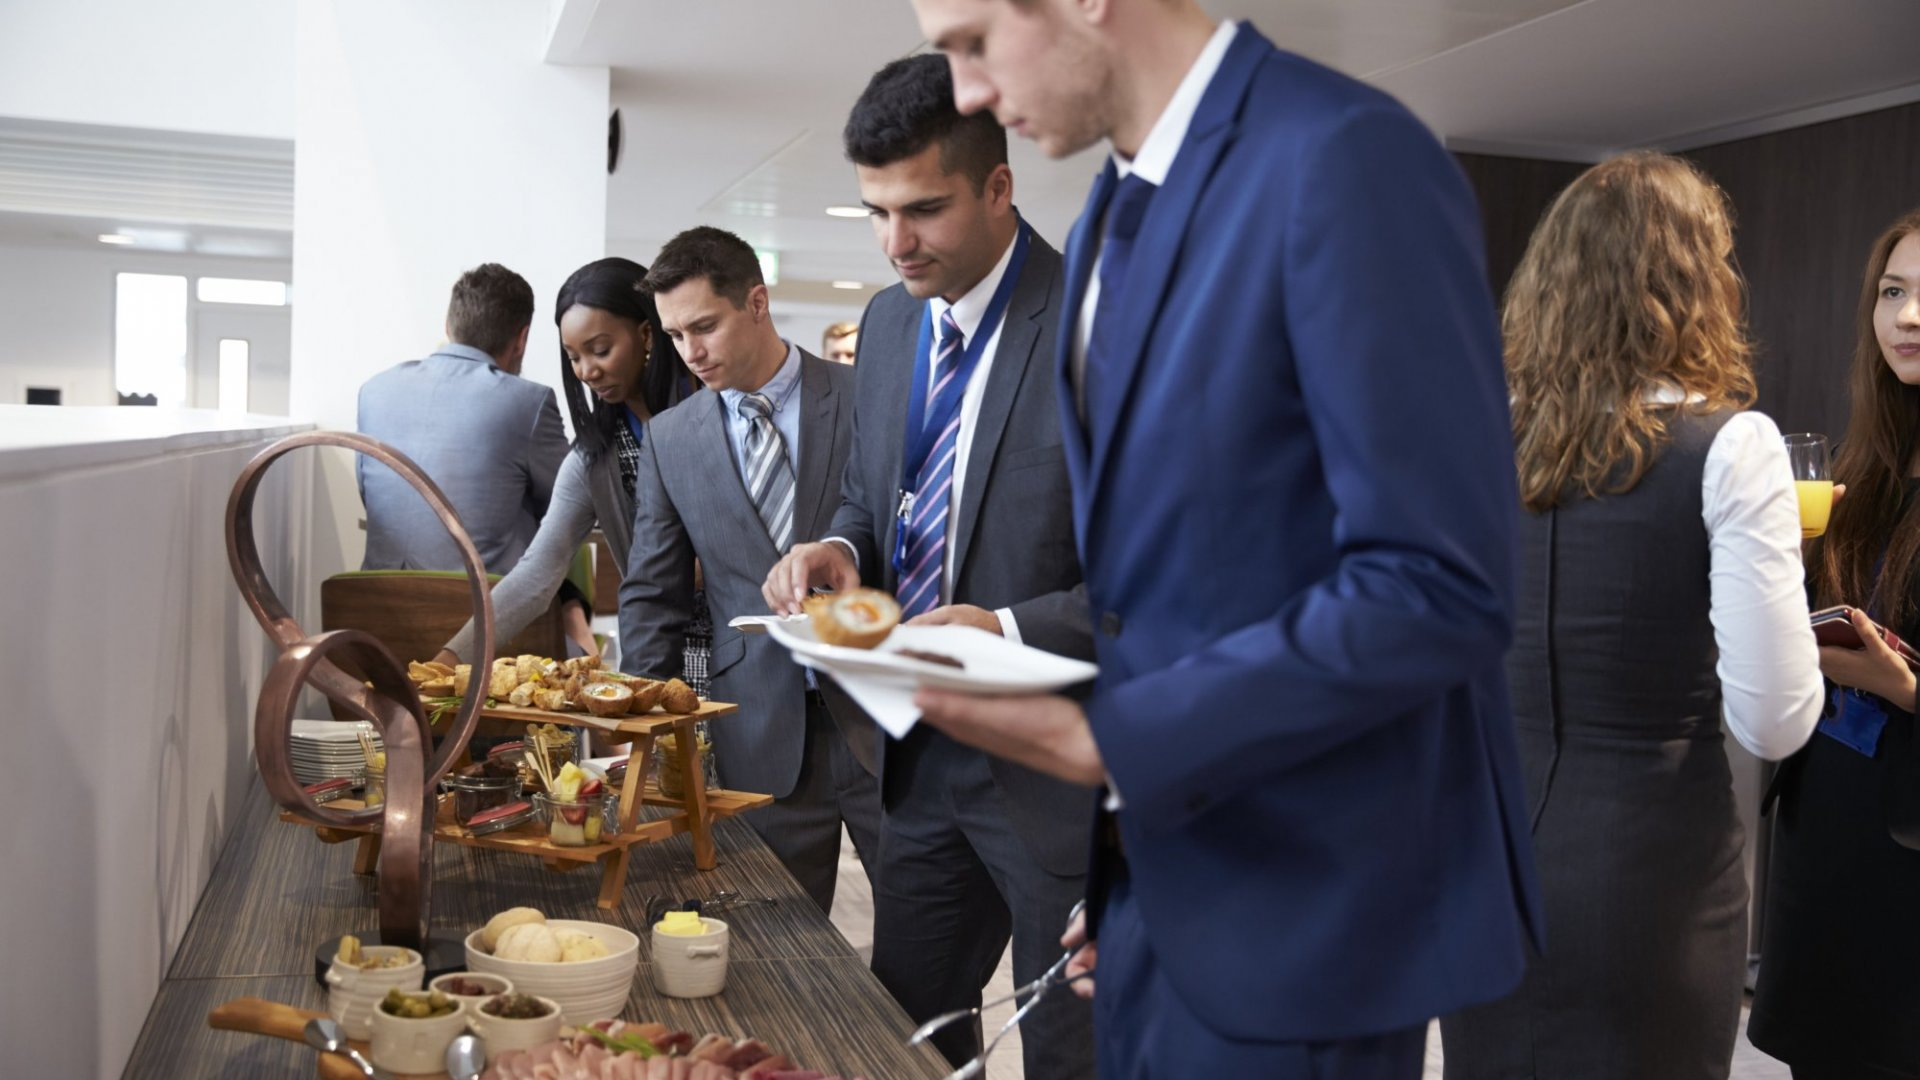 Here's Why Eating at Work is Really Bad for You (Plus Other Recent Studies About How You Can Live Better, Longer)